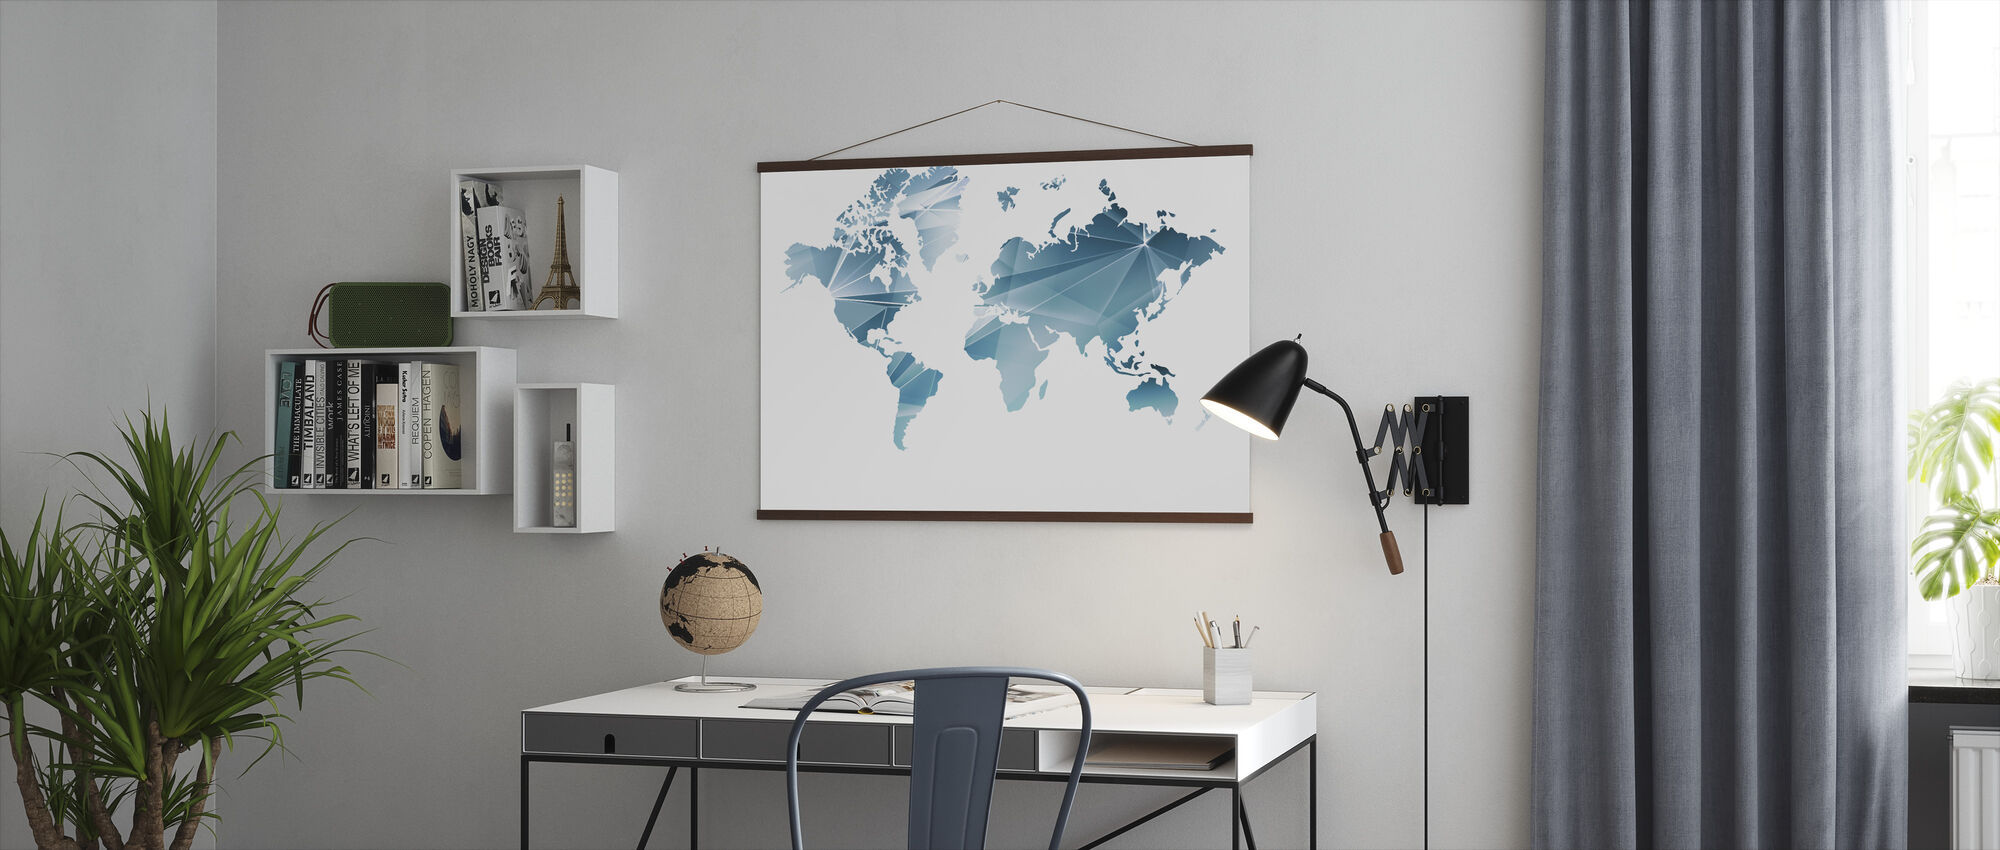 Geometric Concept World Map - Poster - Office